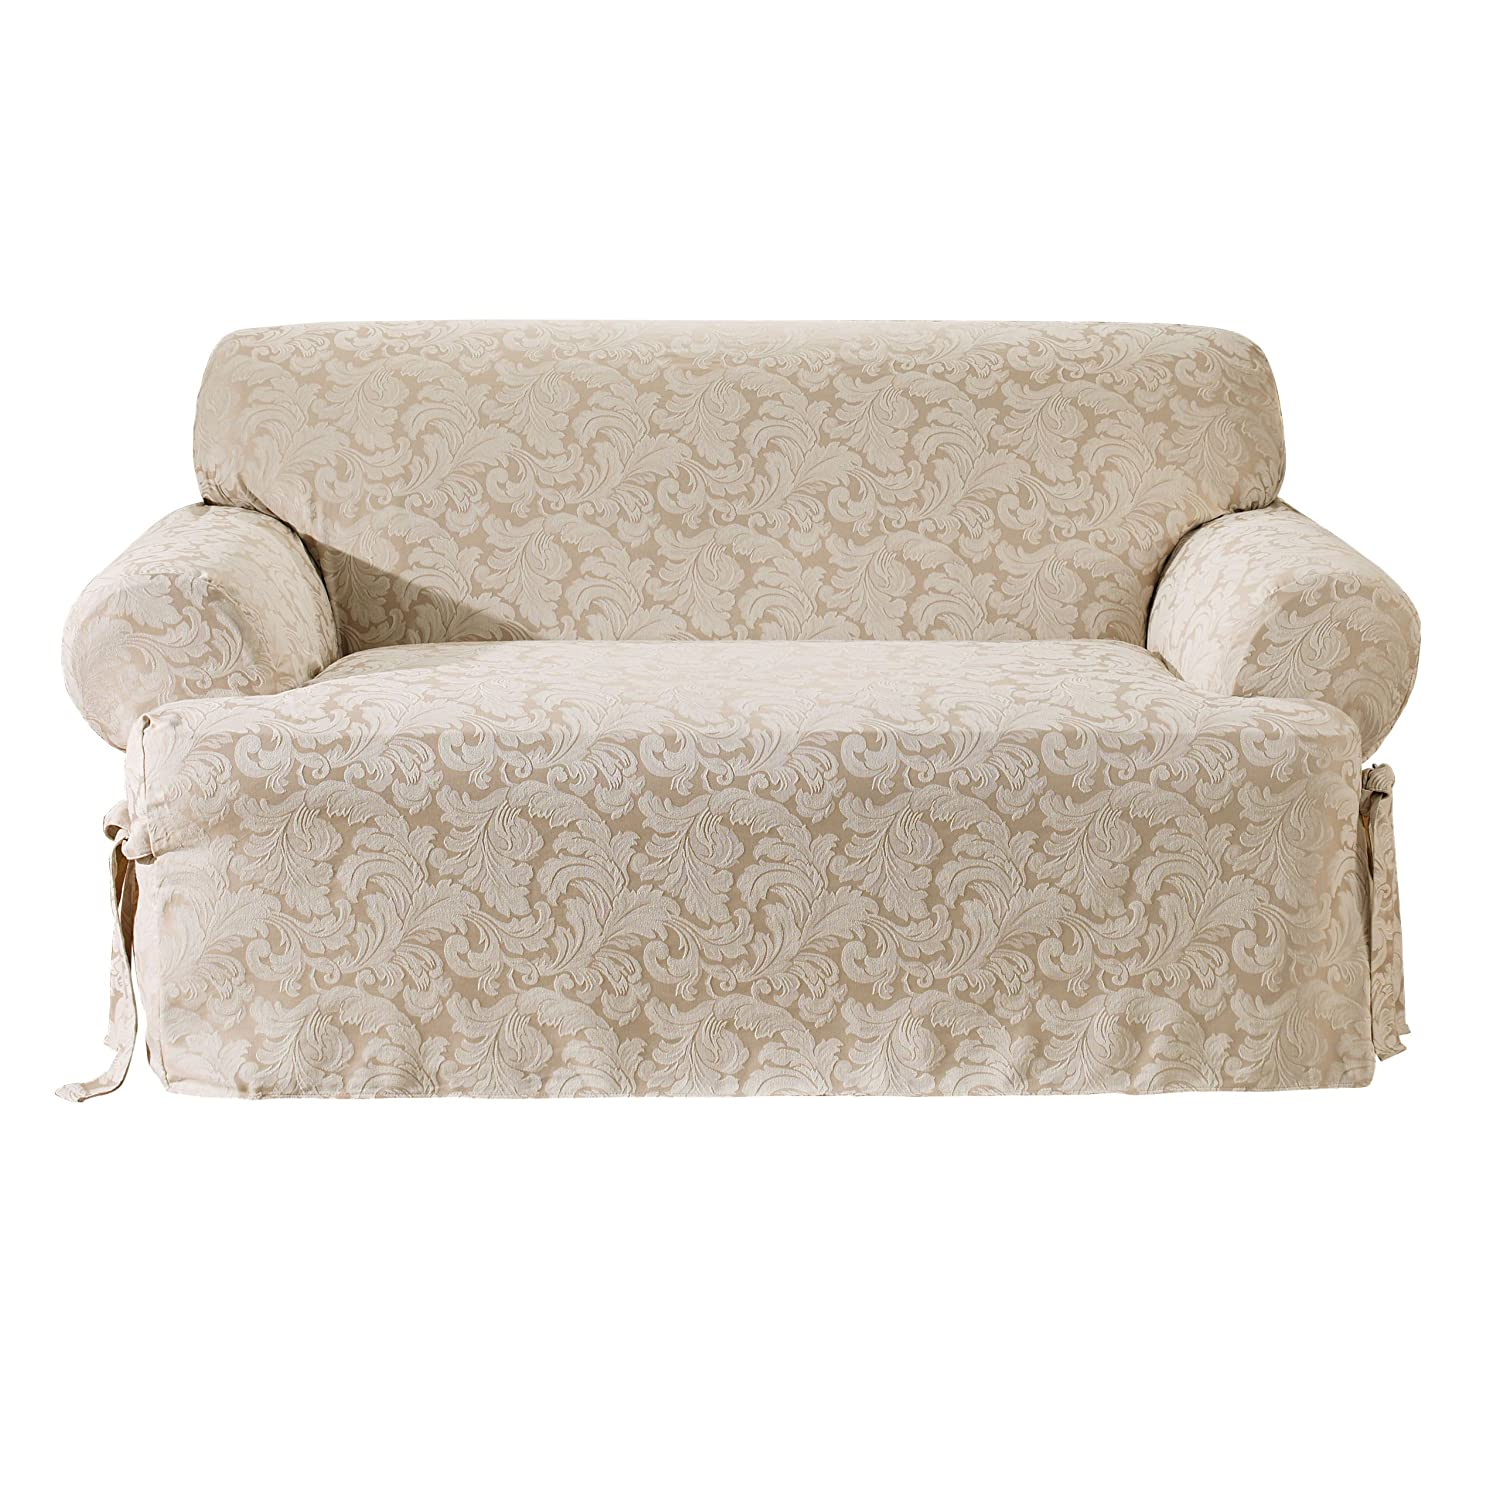 Amazon Sure Fit Scroll T Cushion Sofa Slipcover Champagne